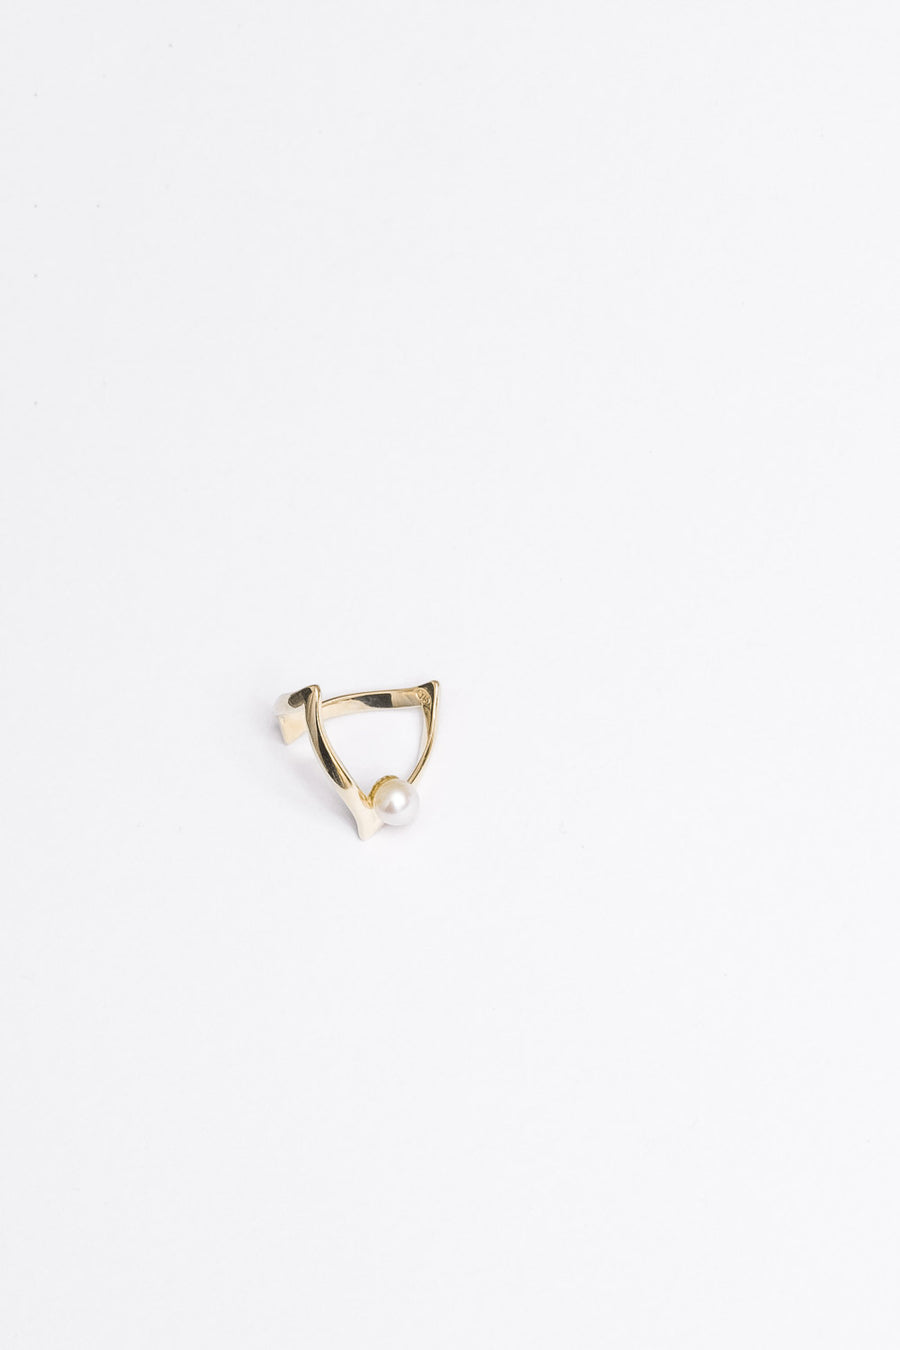 En Pointe Ring with Pearl | 9K Yellow Gold